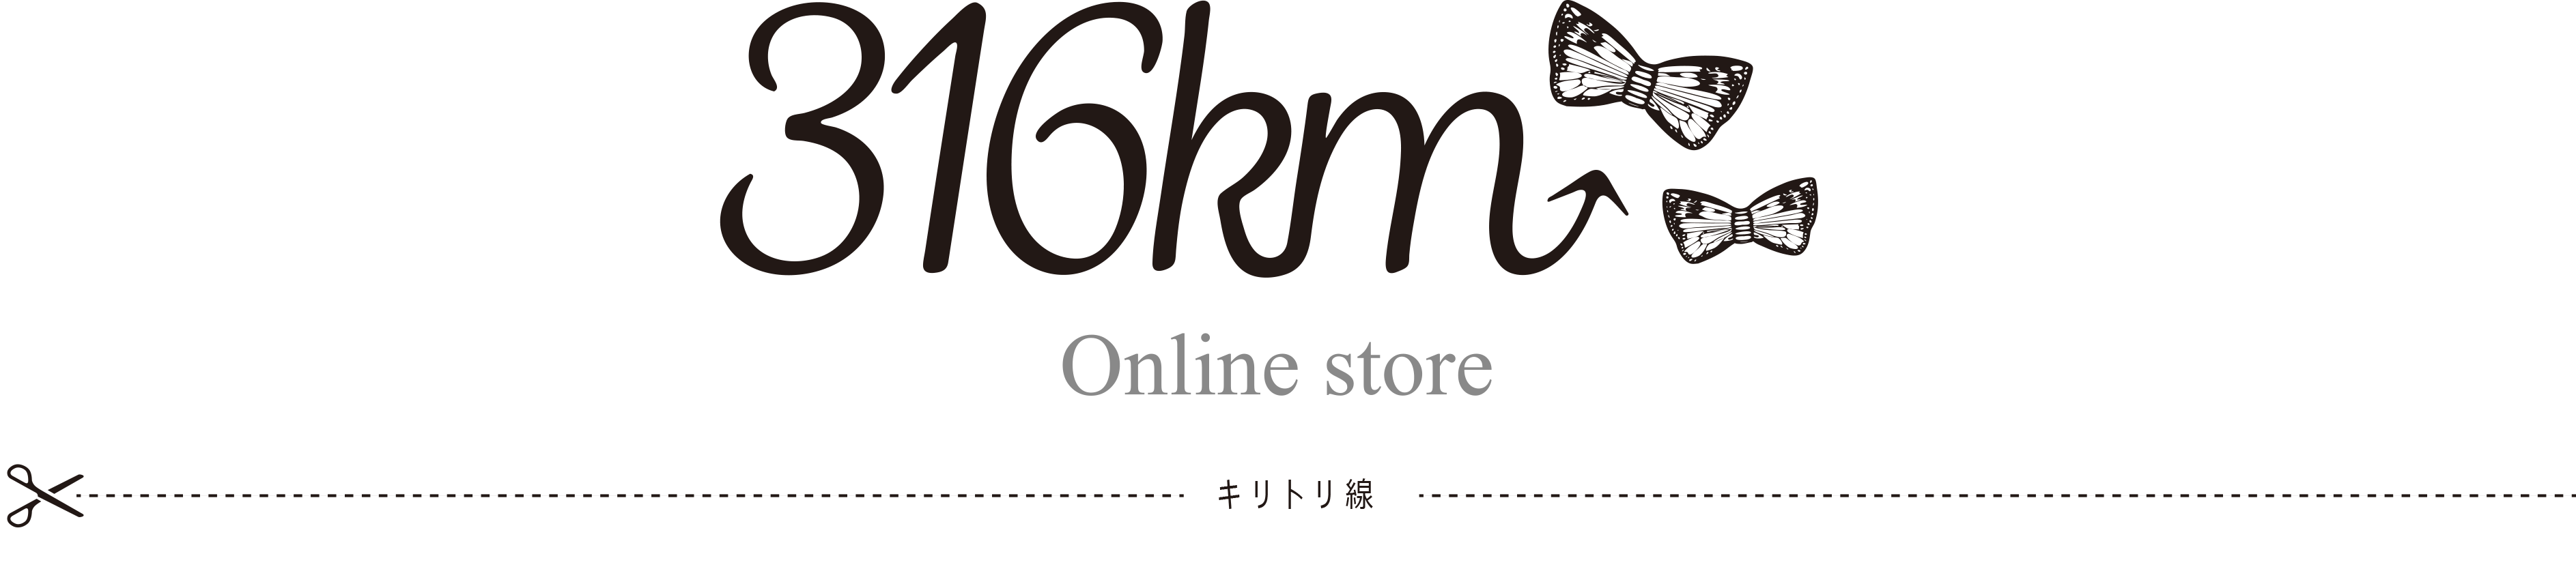 316km online store